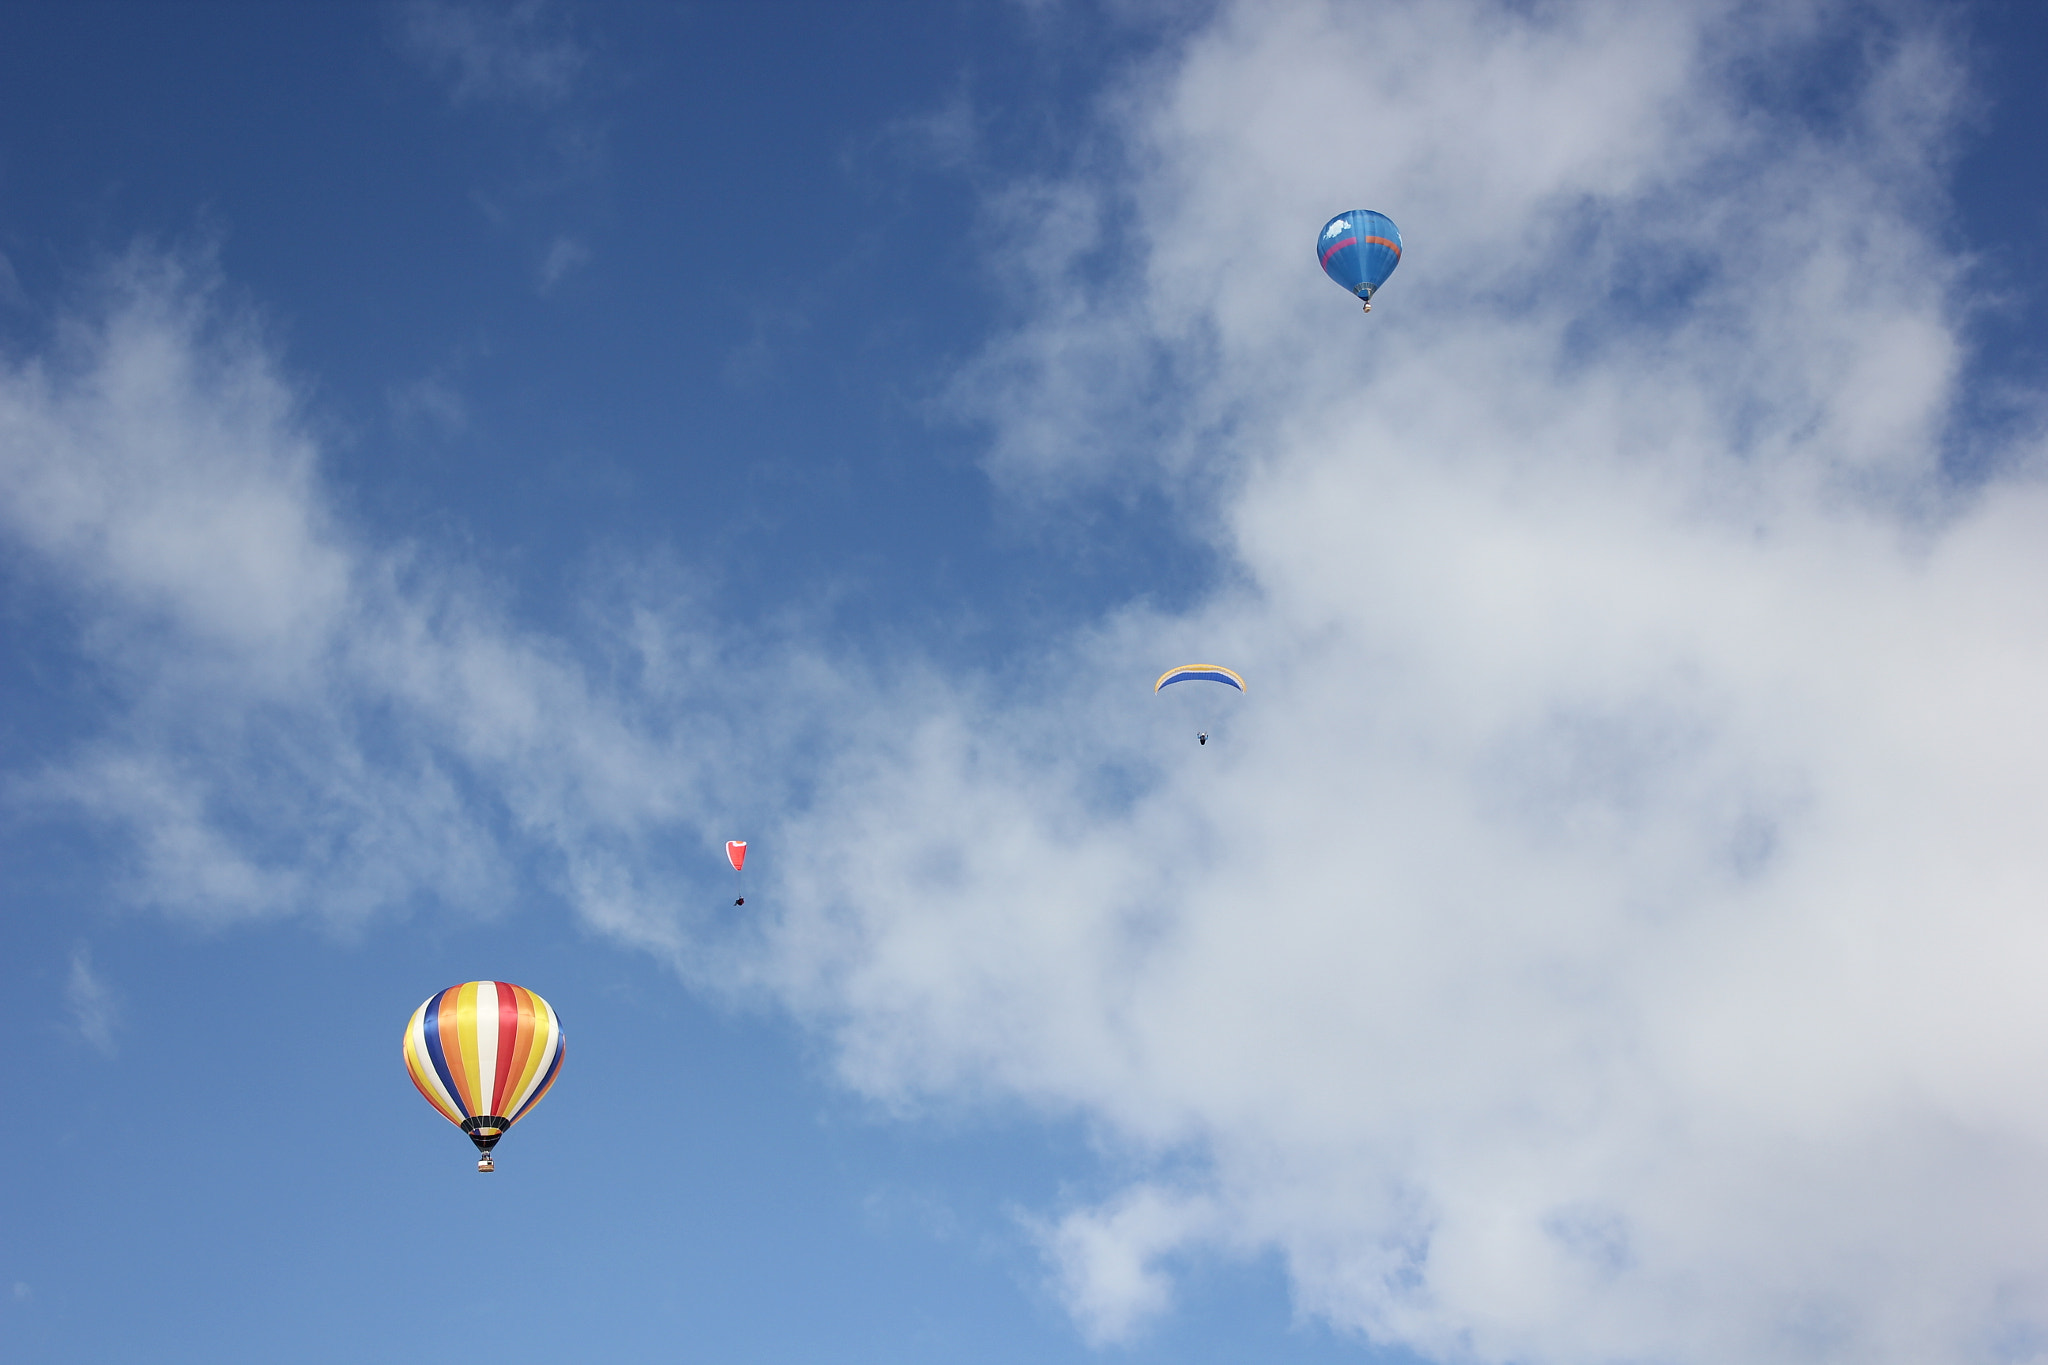 Photograph Up in the air! by Komal S on 500px